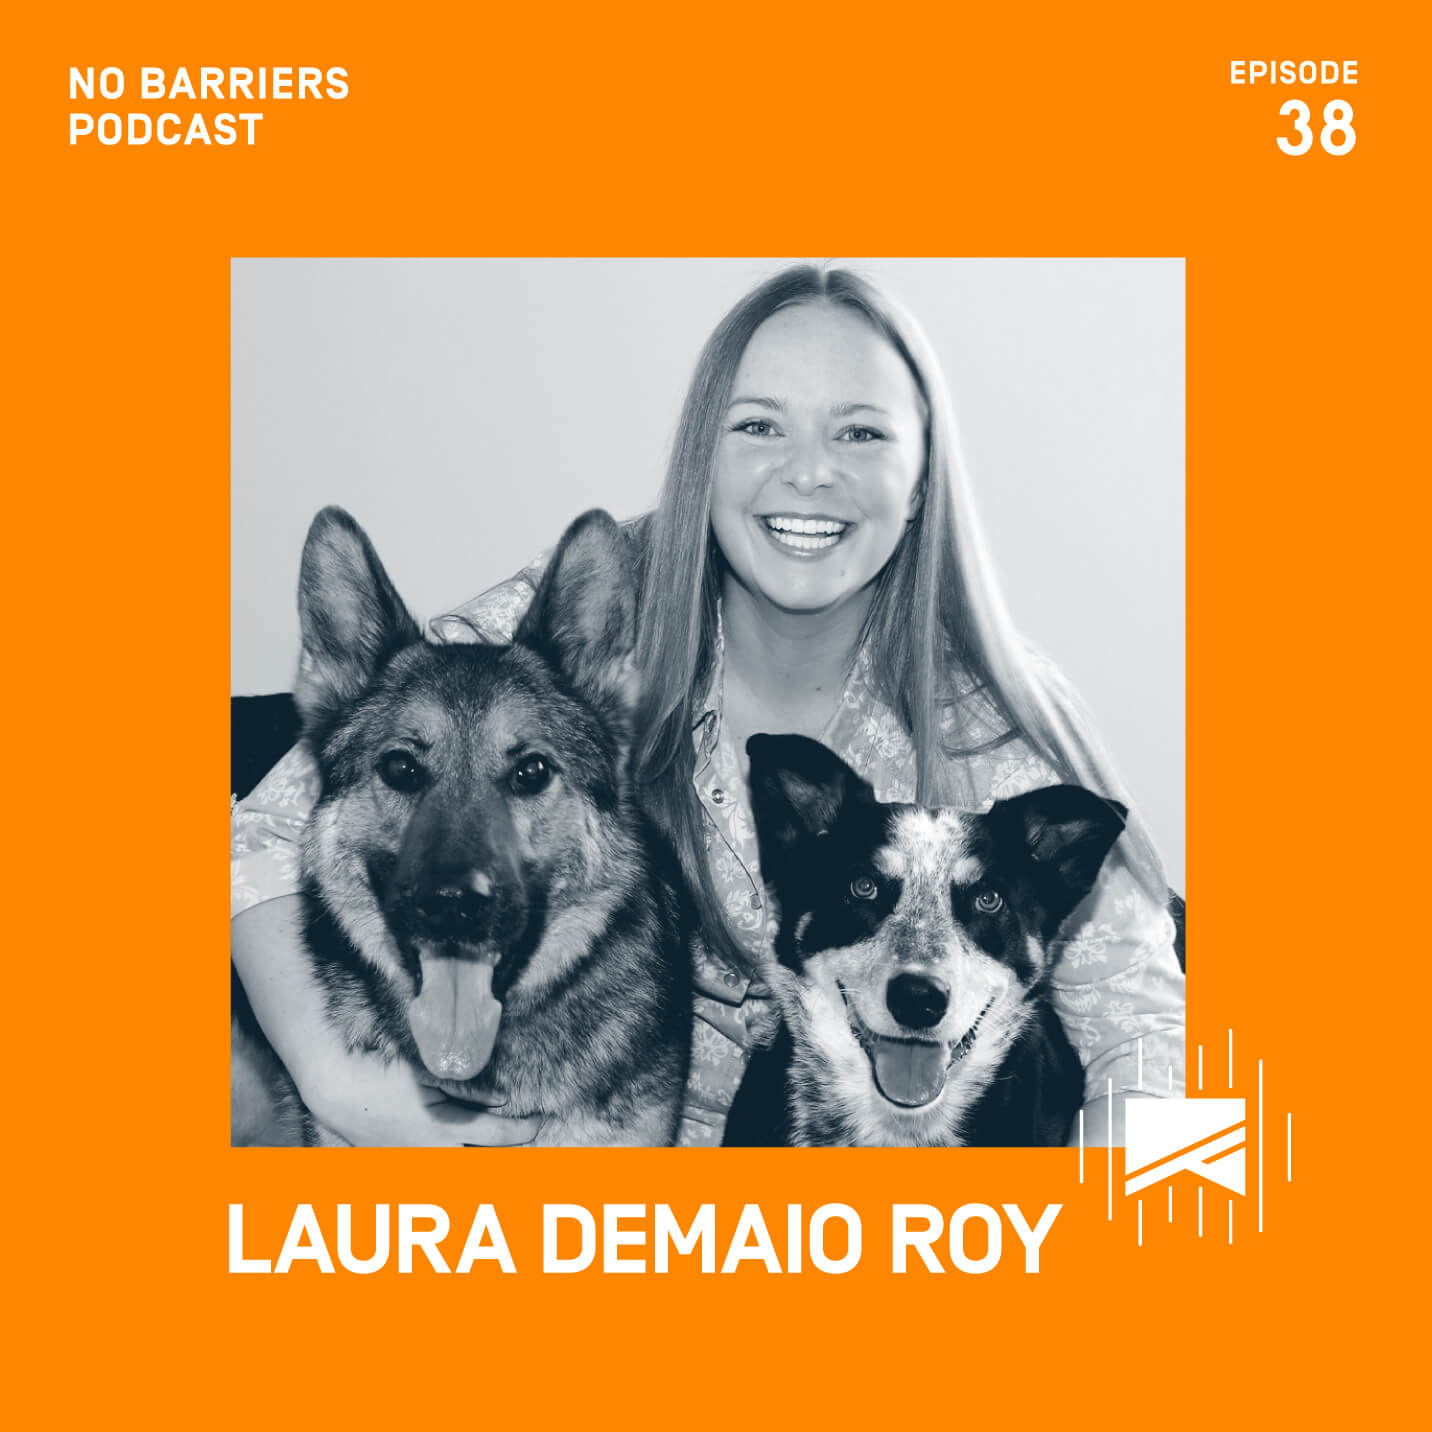 Laura DeMaio Roy dog trainer doggy u